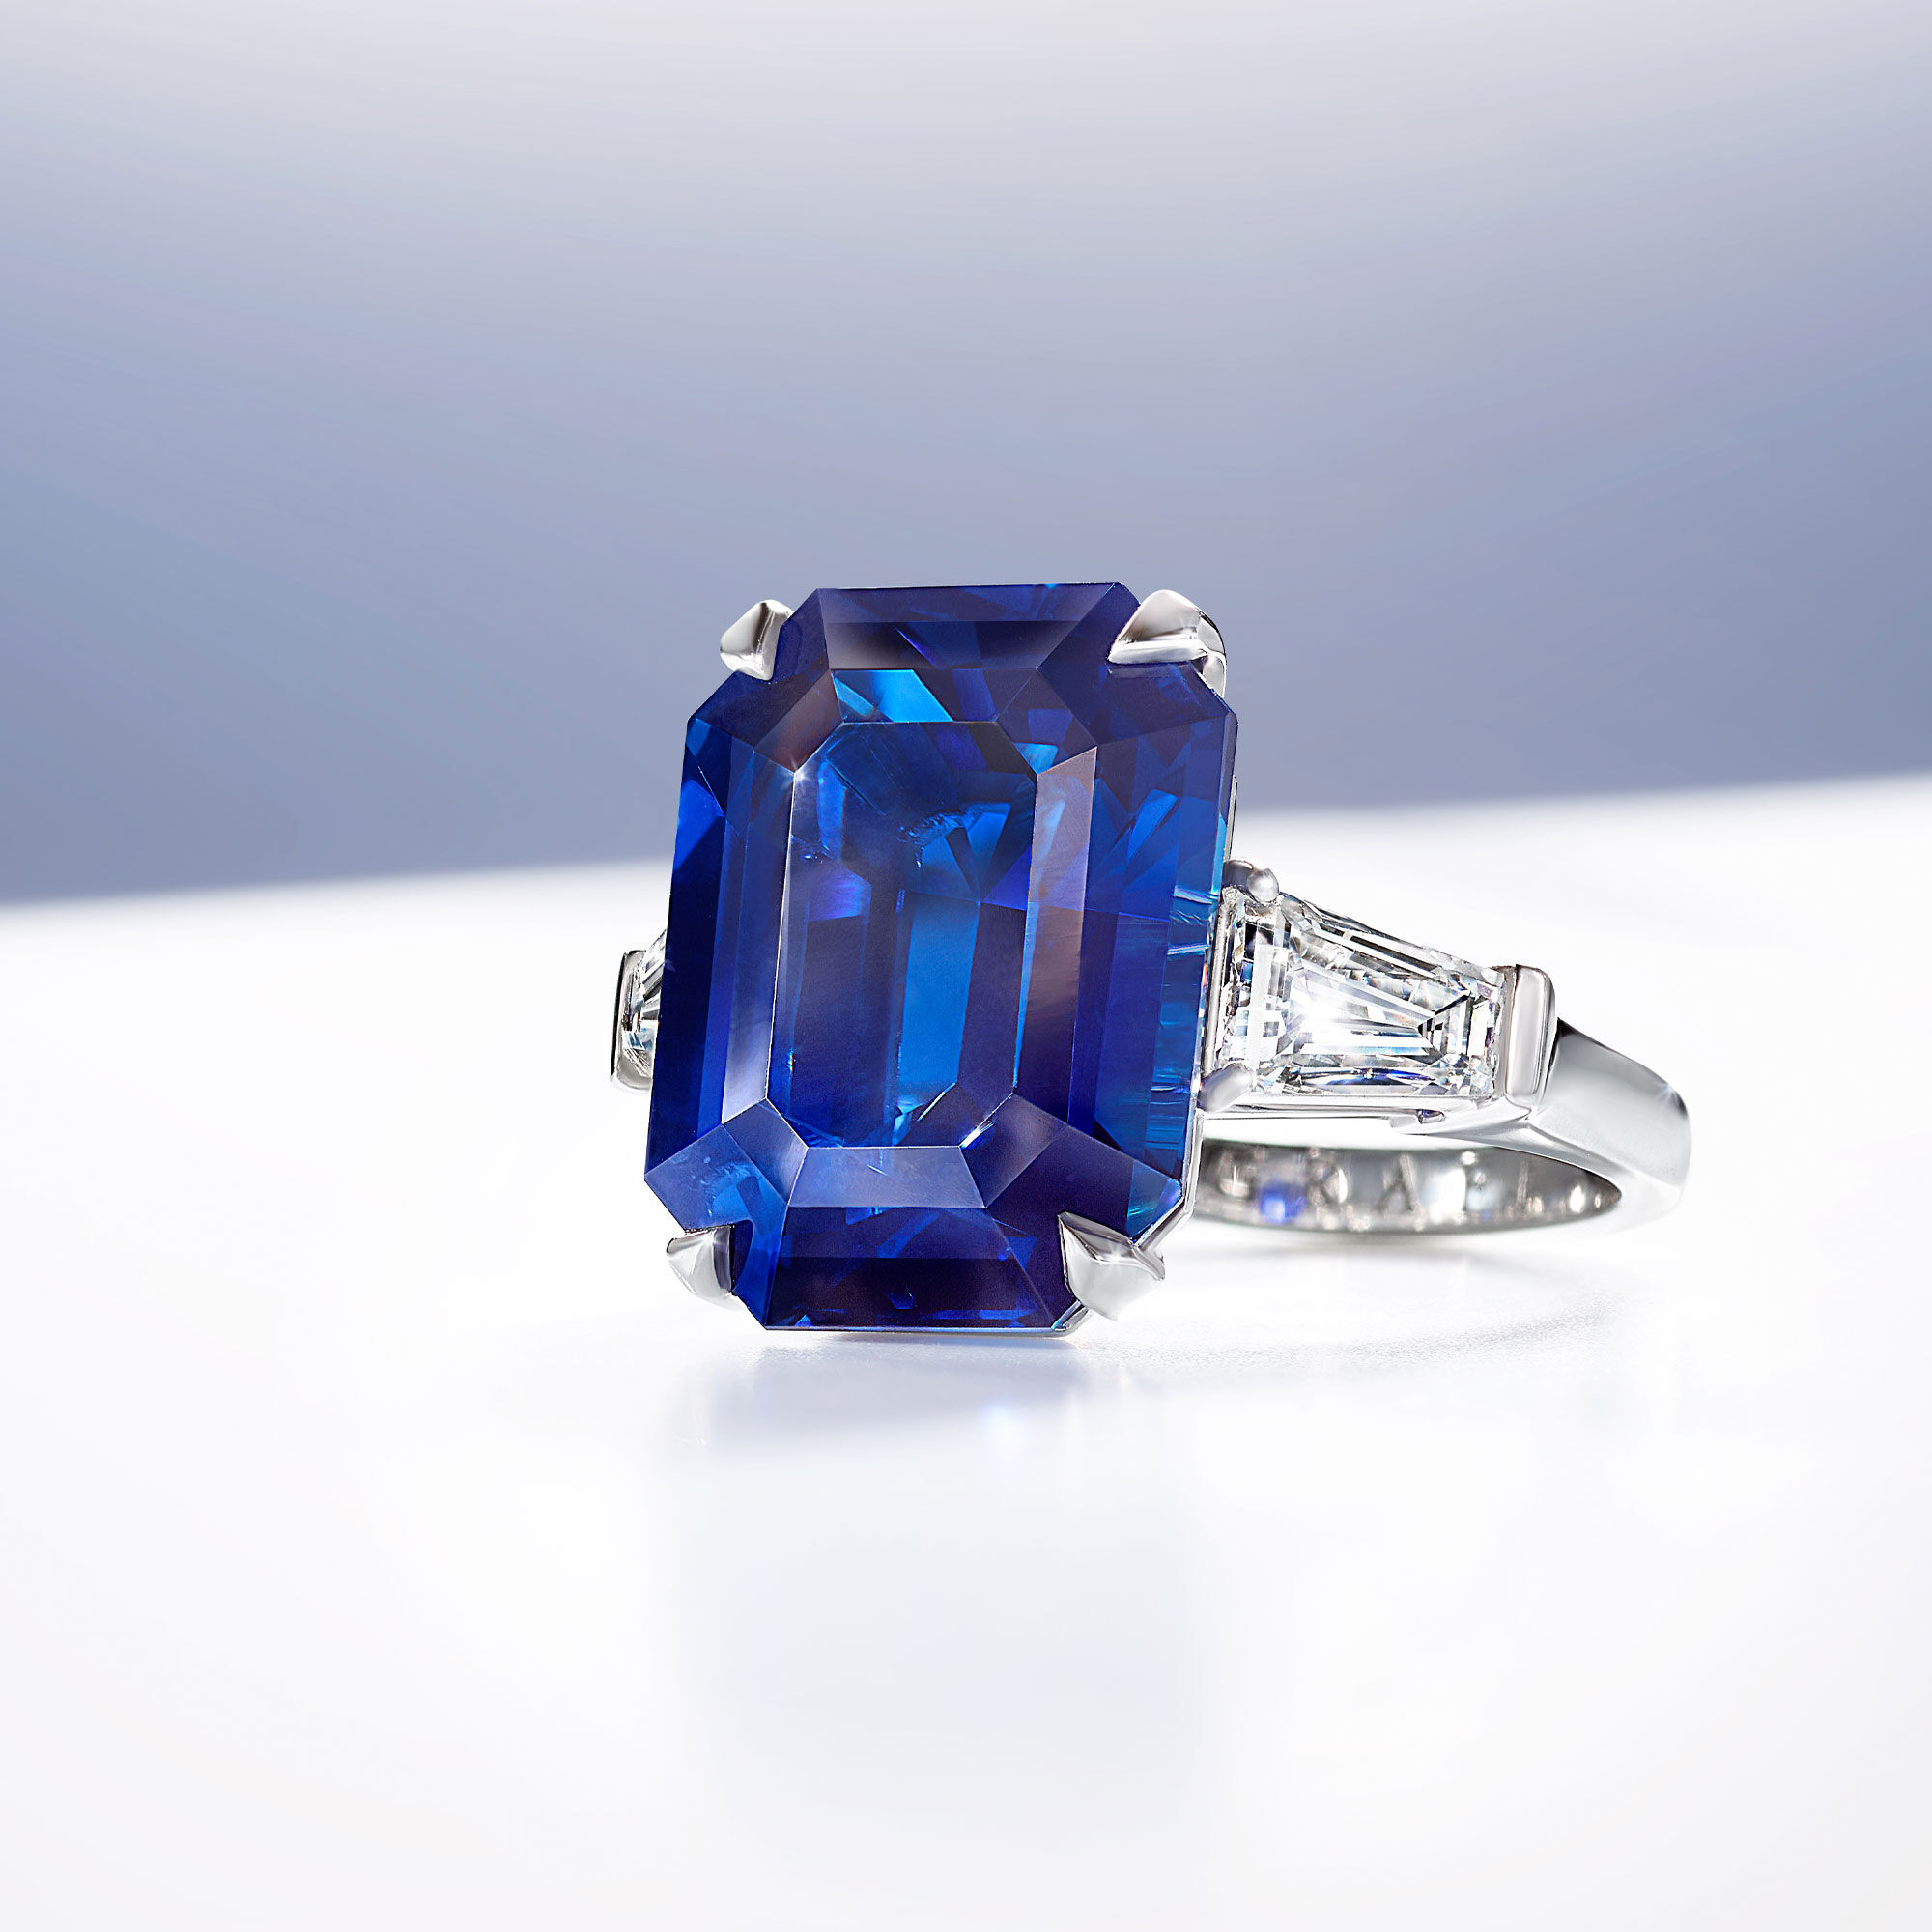 An emerald cut sapphire and white diamond ring by Graff